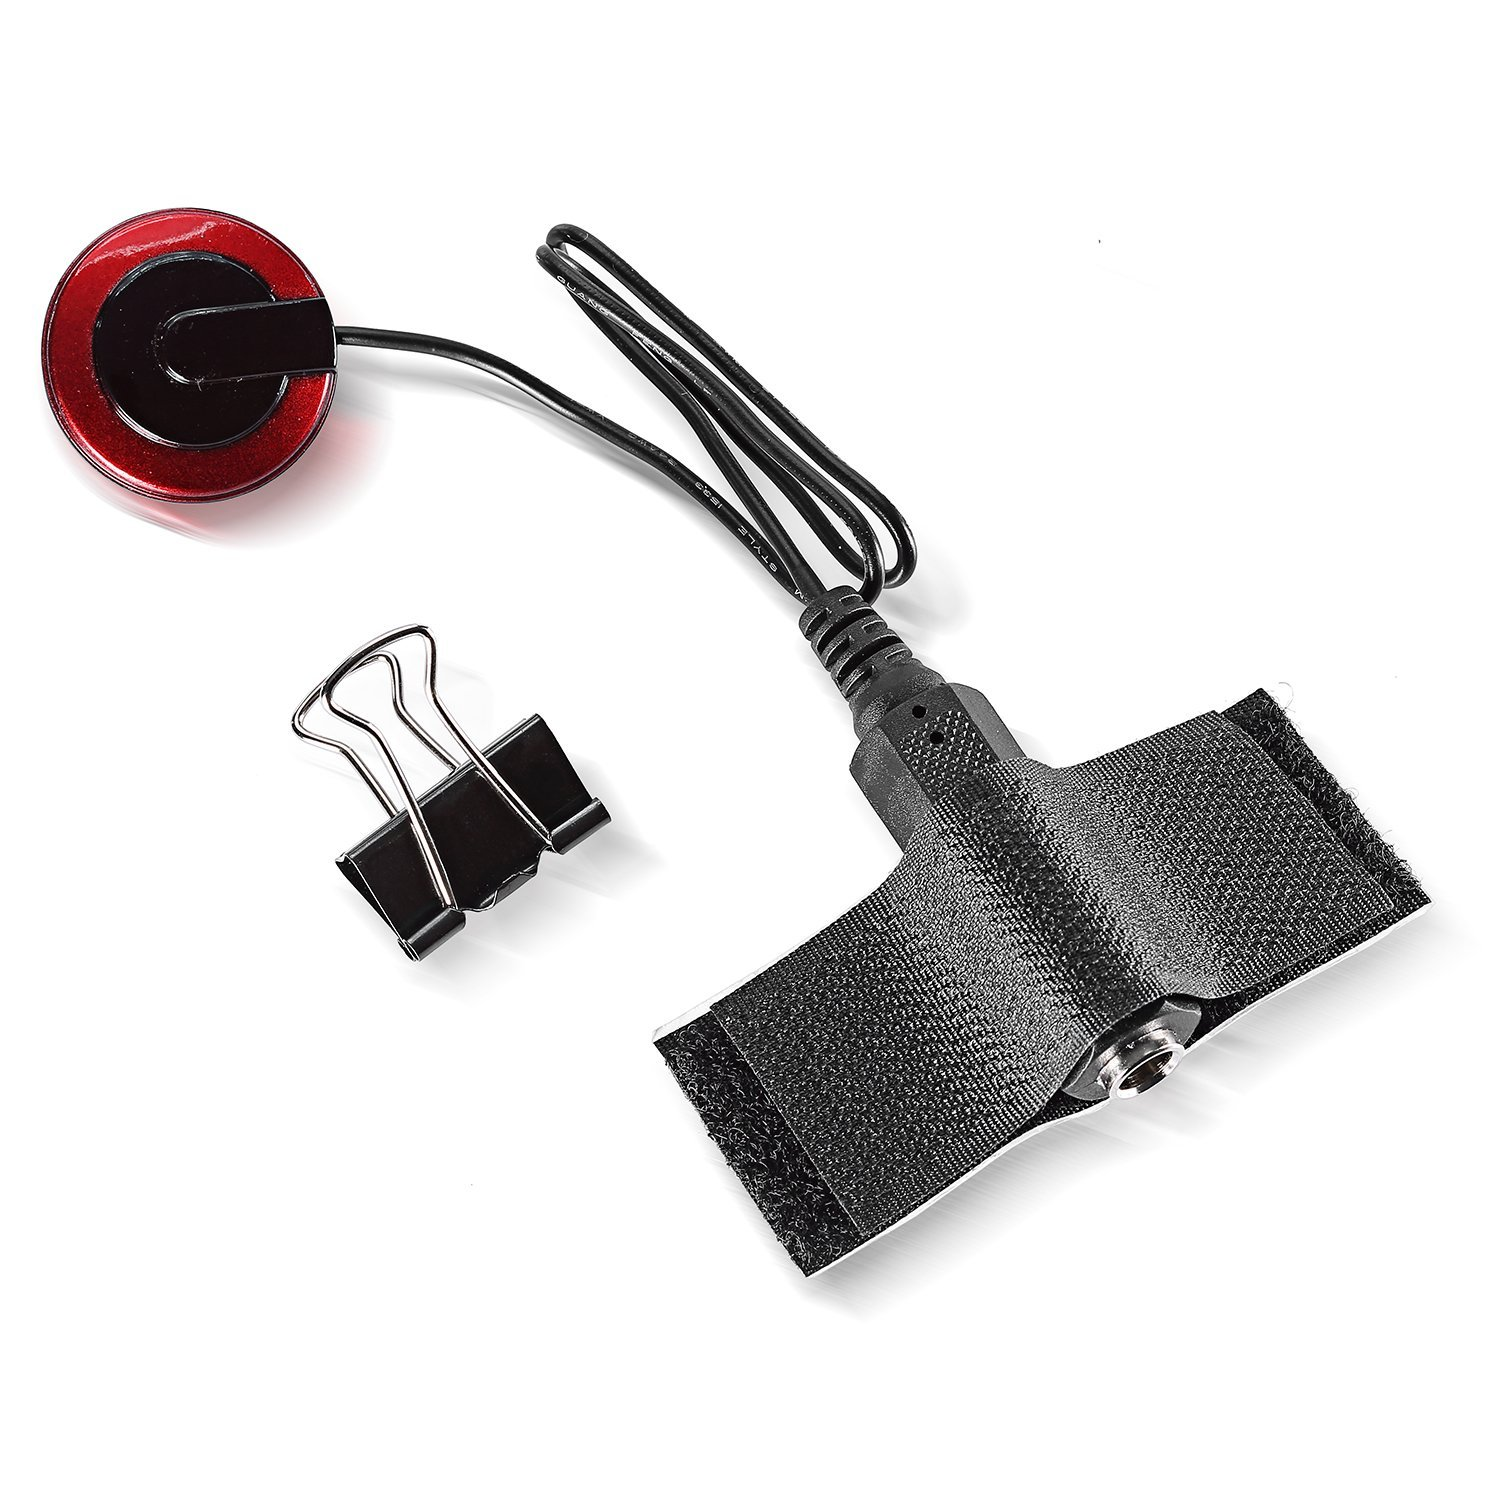 5-Pack Piezo Contact Microphone Pickups for Guitar, Violin, Banjo, OUD, Ukulele, Mandolin, Cello and More, Pick up Clear